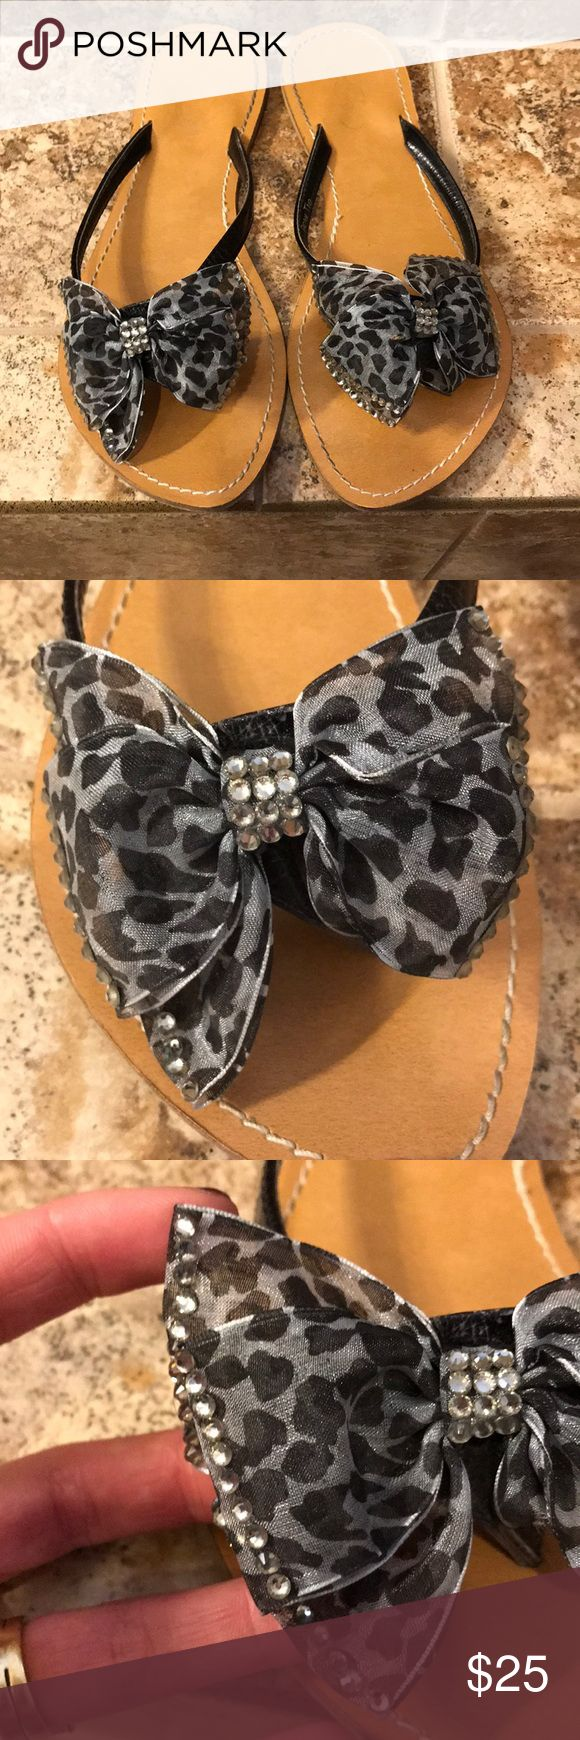 Animal Print and Rhinestone Bow Flip Flops Beautiful animal print and rhinestone flip flops. Black leather thong, the edges of each bow is adorned with rhinestones, as well as the center of each bow. The soles are leather and nice and sturdy. These were only worn a few times. You can see by the condition of the sole there is no wearing or foot print. These have also been sanitized. Size 7 and they fit true. Zero flaws. Perfect for upcoming beach trips or wearing around the pool. SFH…